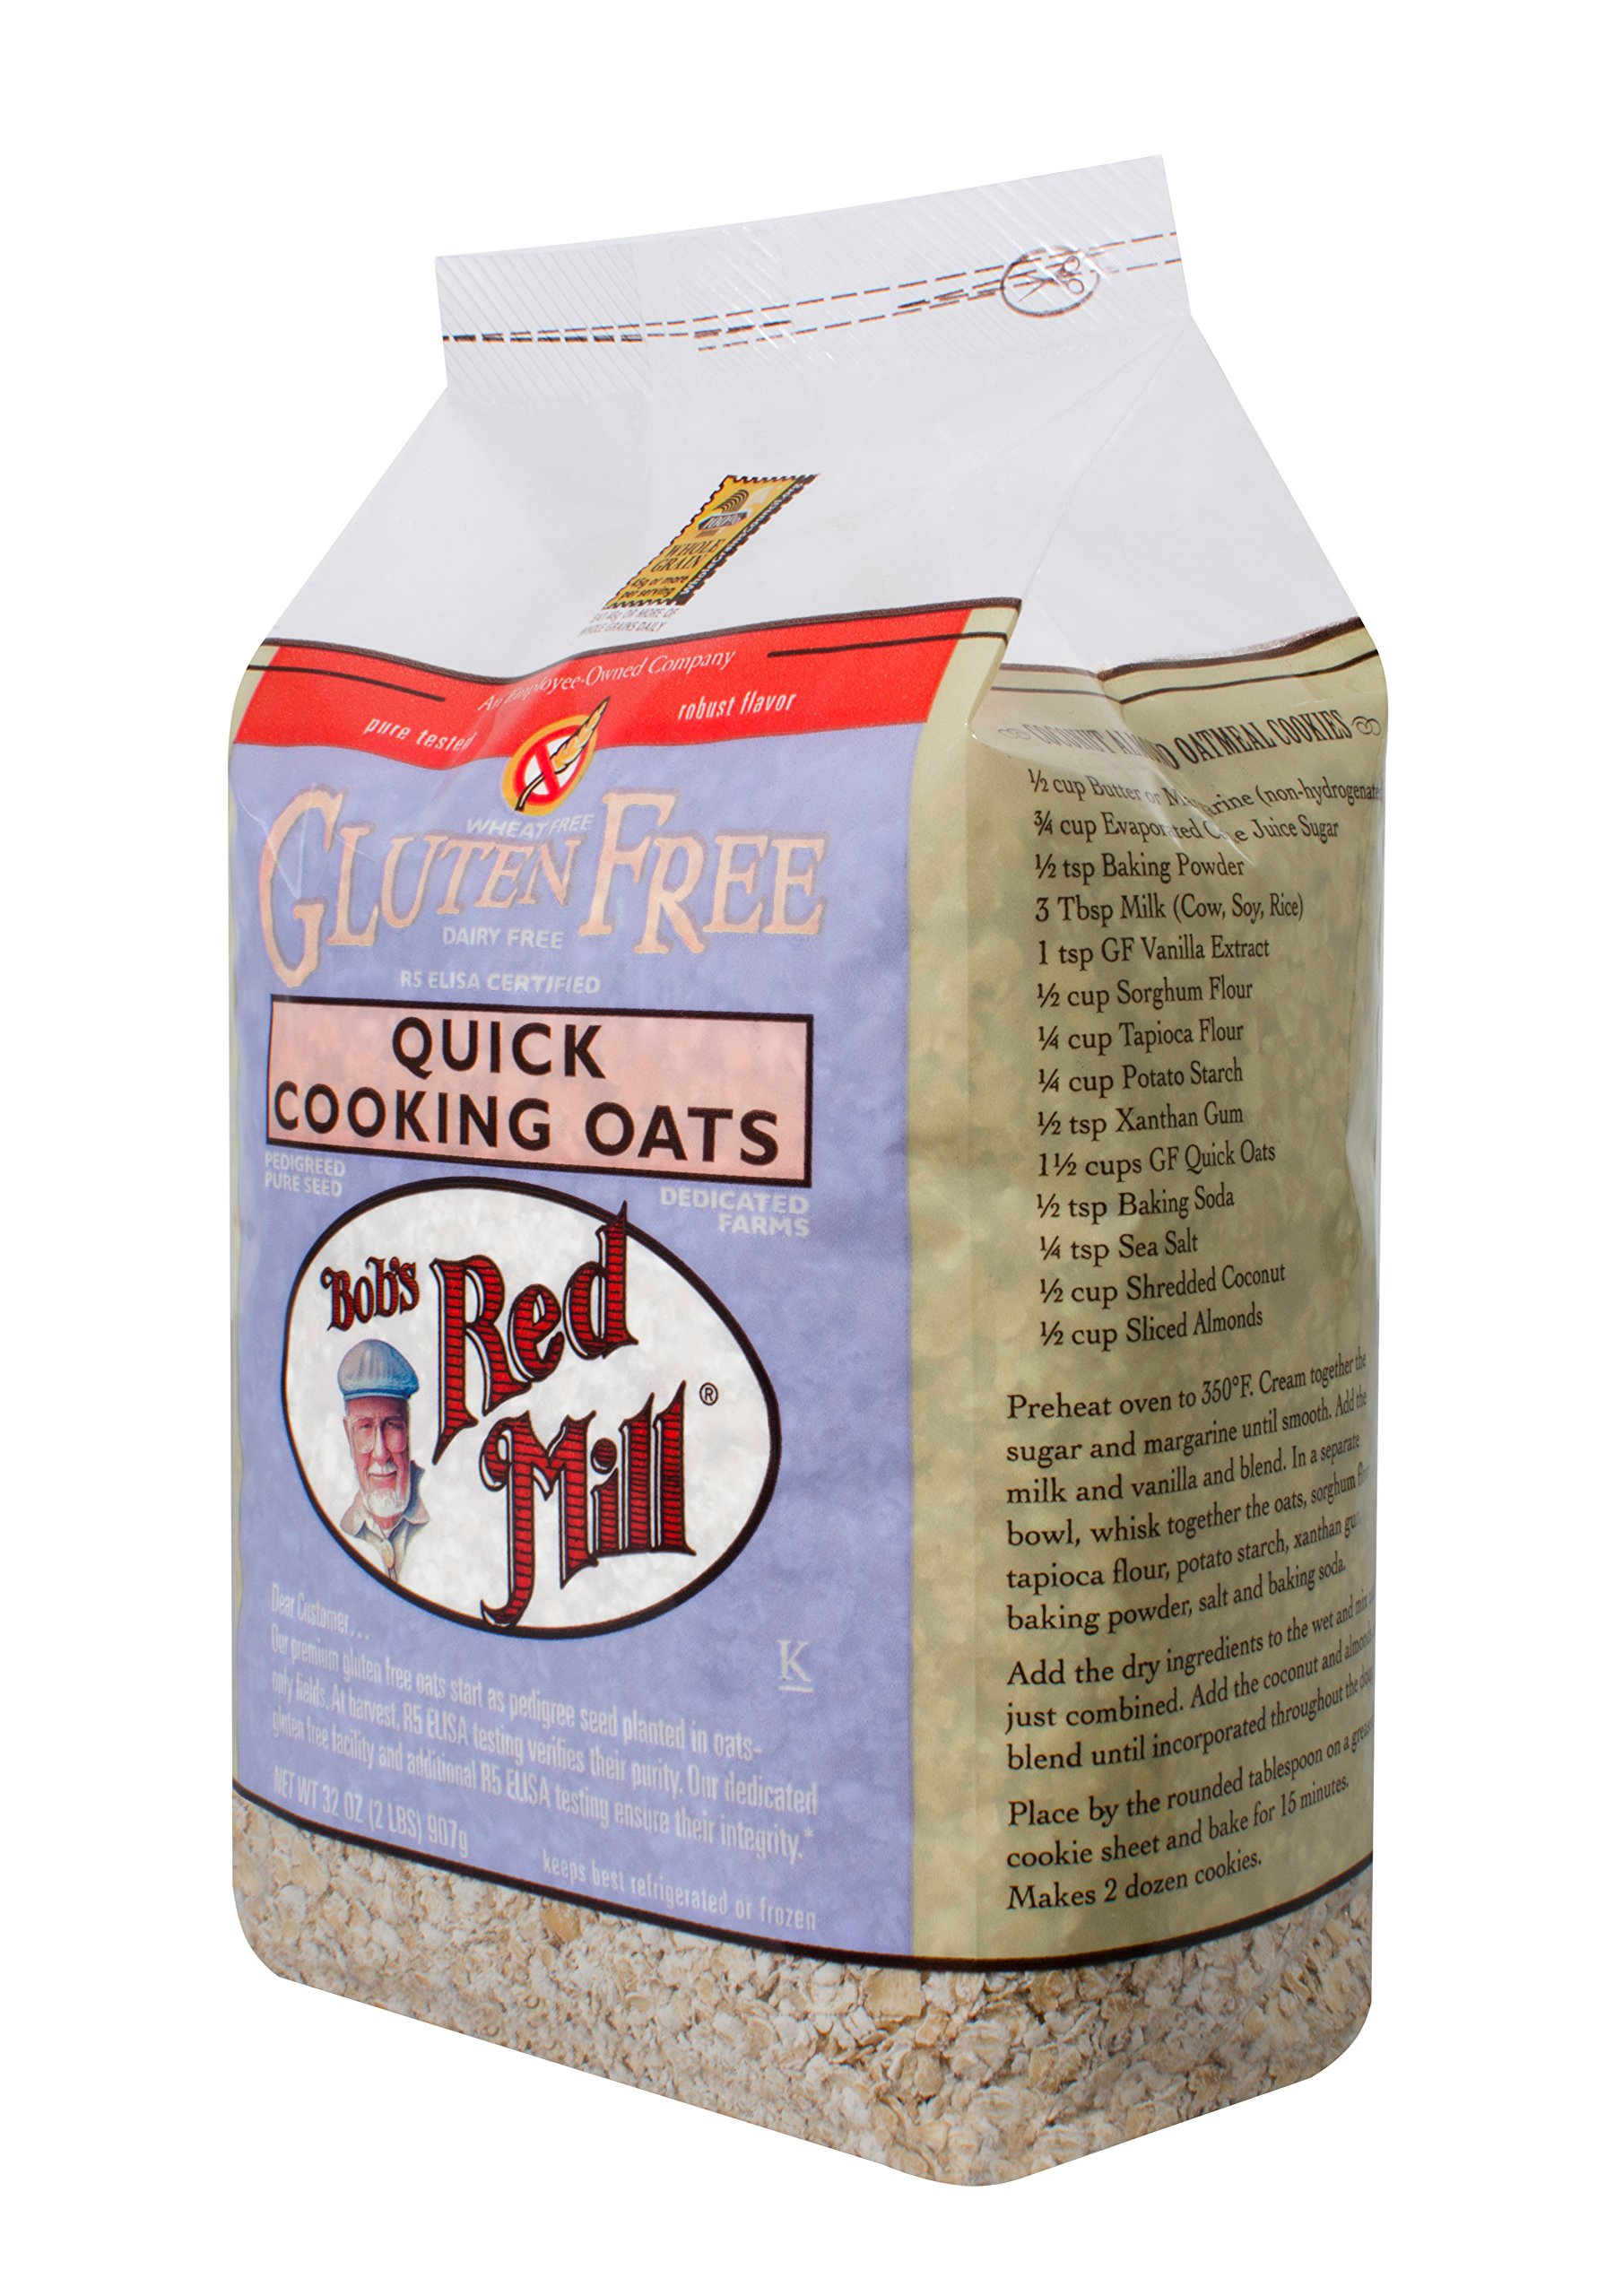 Bob's Red Mill Gluten Free Organic Quick Cooking Rolled Oats, 32 Oz (4 Pack) by Bob's Red Mill (Image #9)